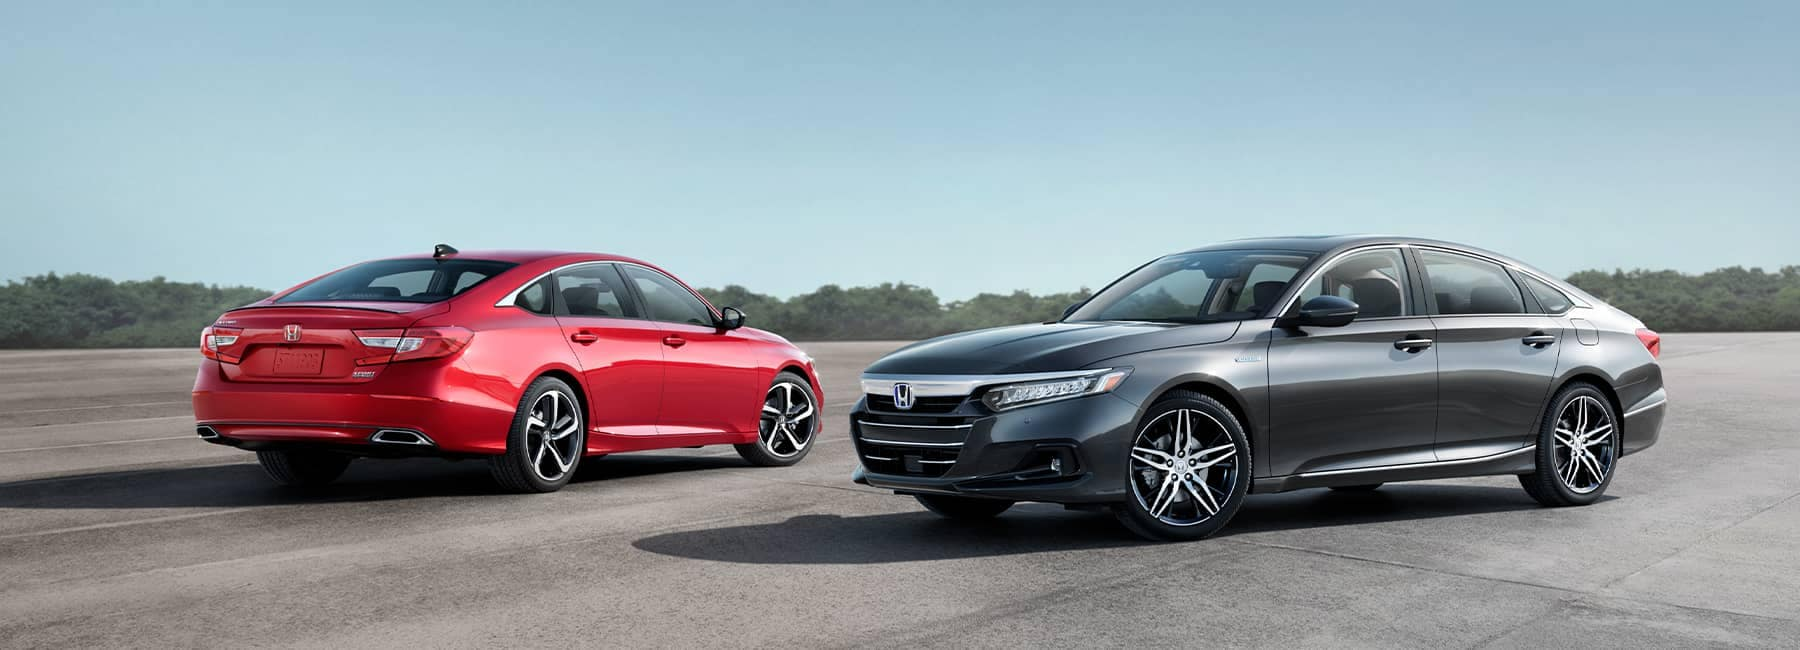 A Red and Grey 2021 Honda Accord parked next to each other